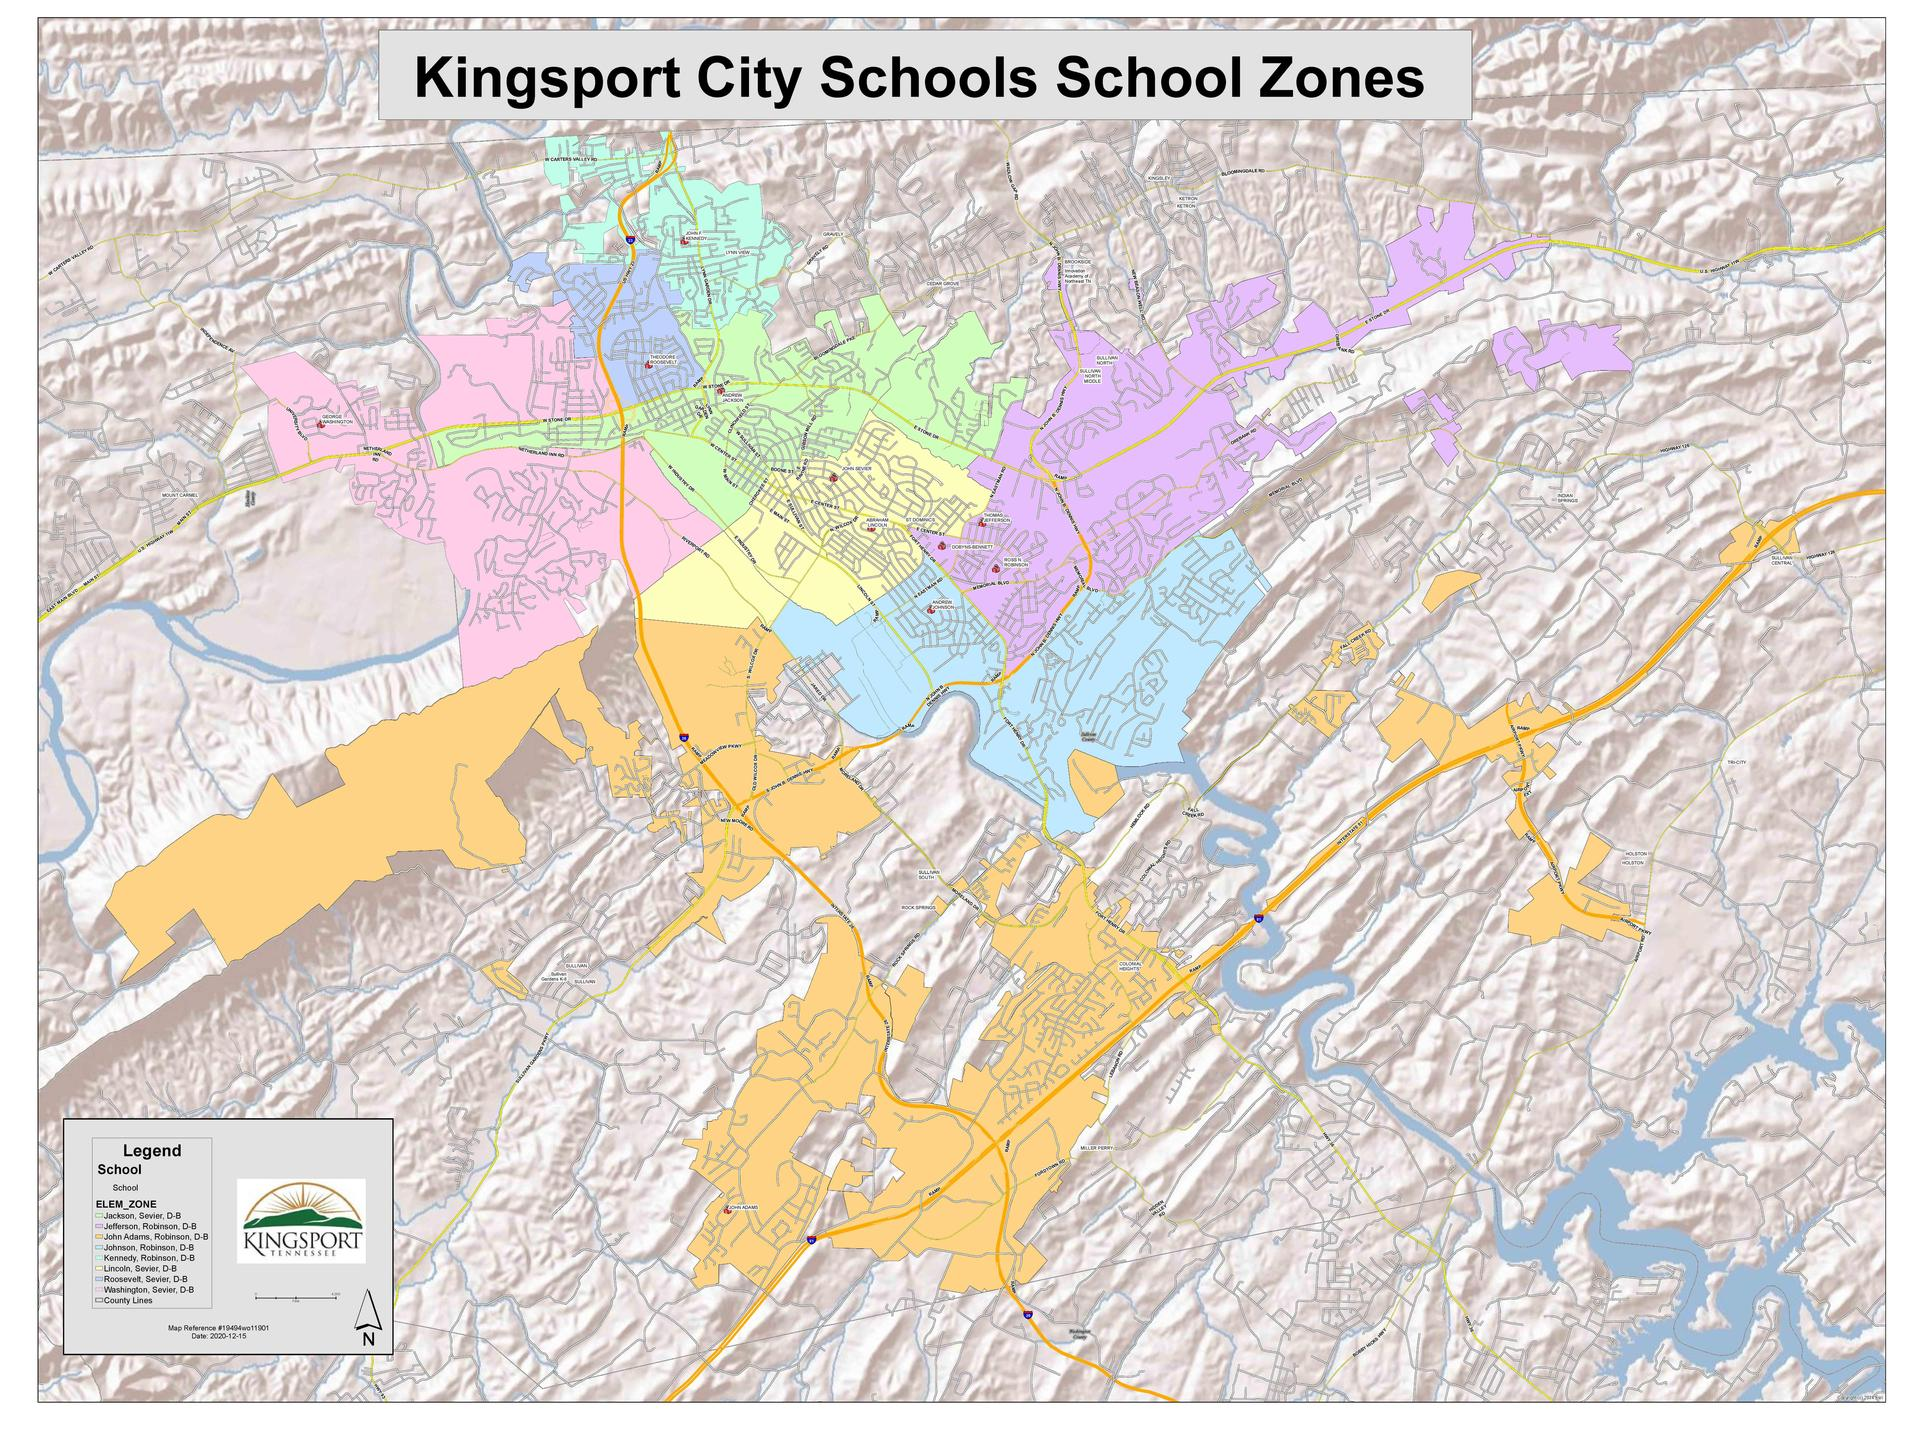 KCS School Zones map